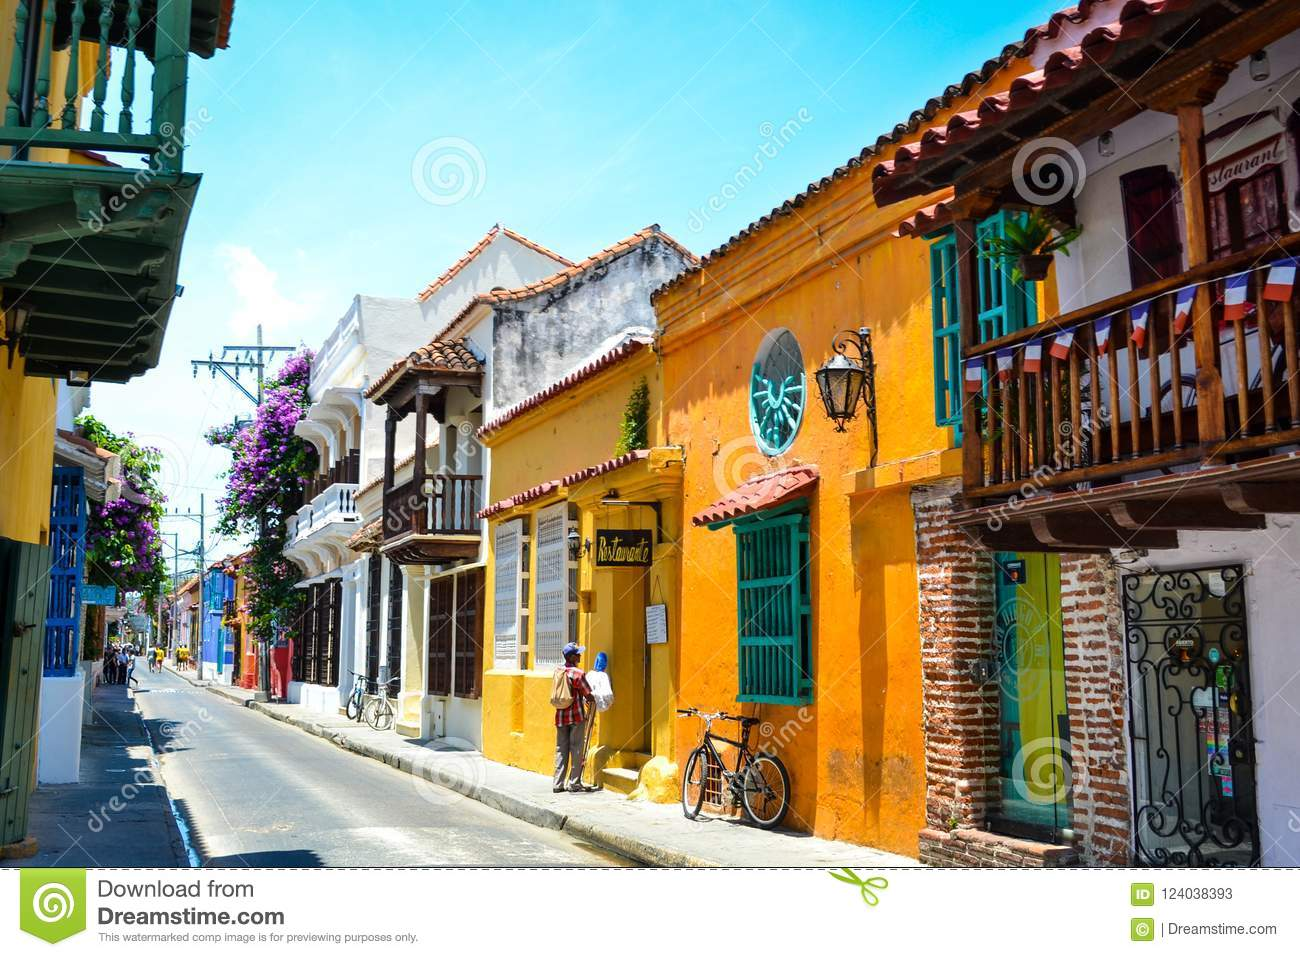 Street view of the colorful Cartagena in Colombia